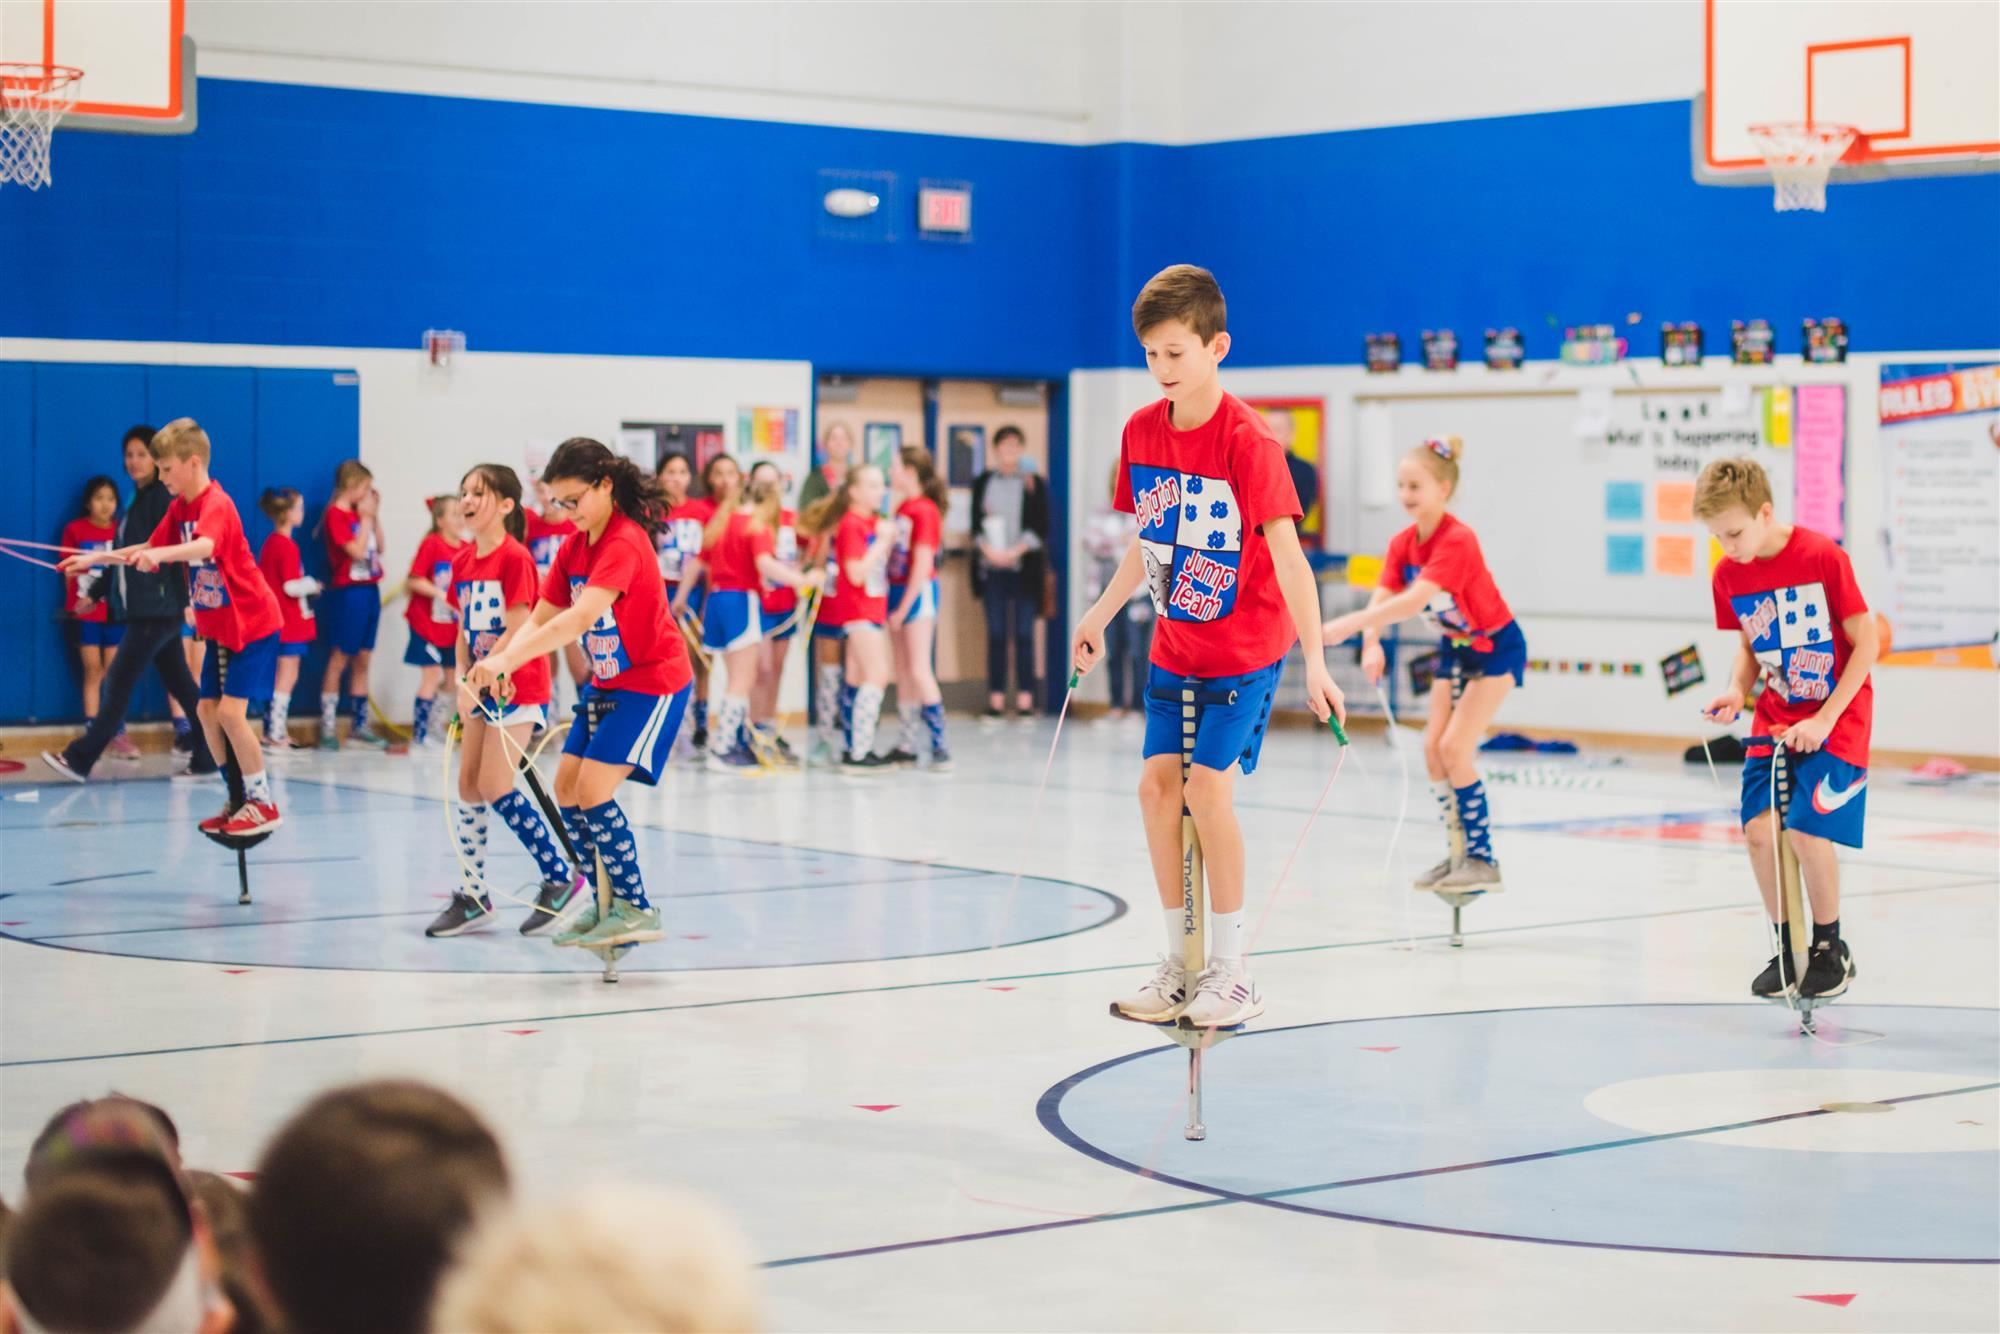 JUmp rope team performs with pogo sticks